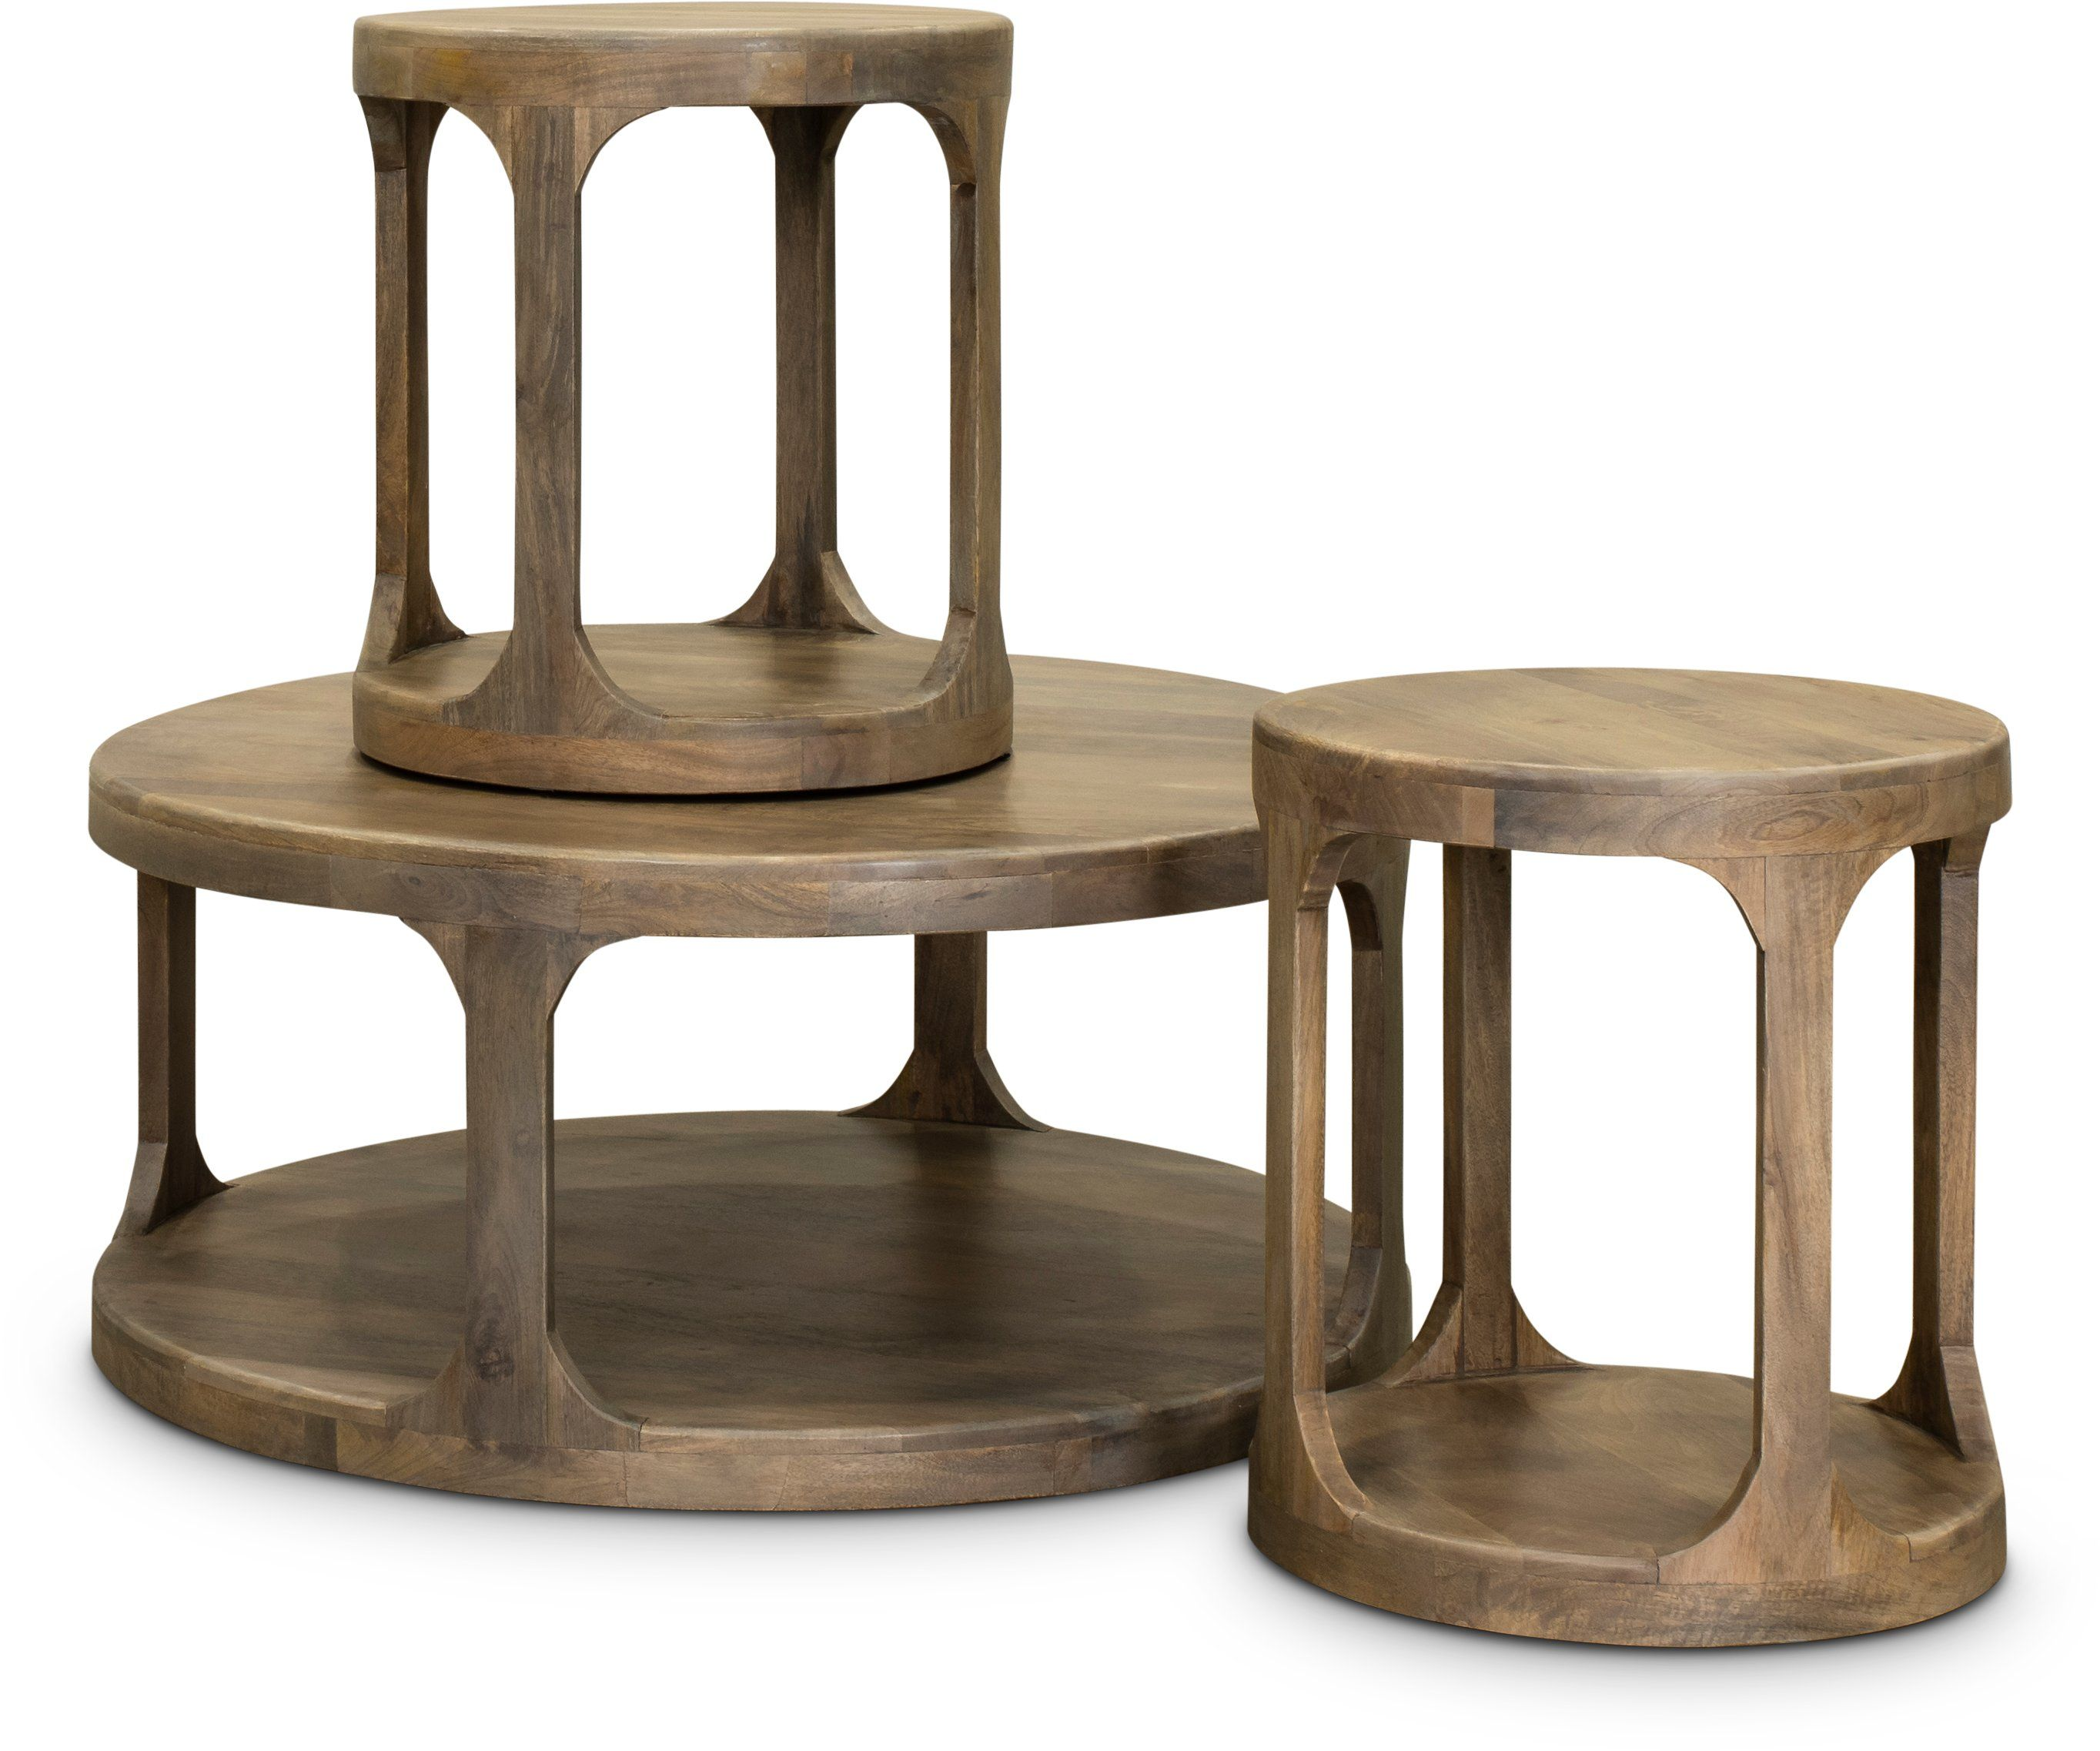 Mist Ash Round End Table Mason Round Coffee Table Coffee Table Rc Willey Furniture [ 2274 x 2728 Pixel ]